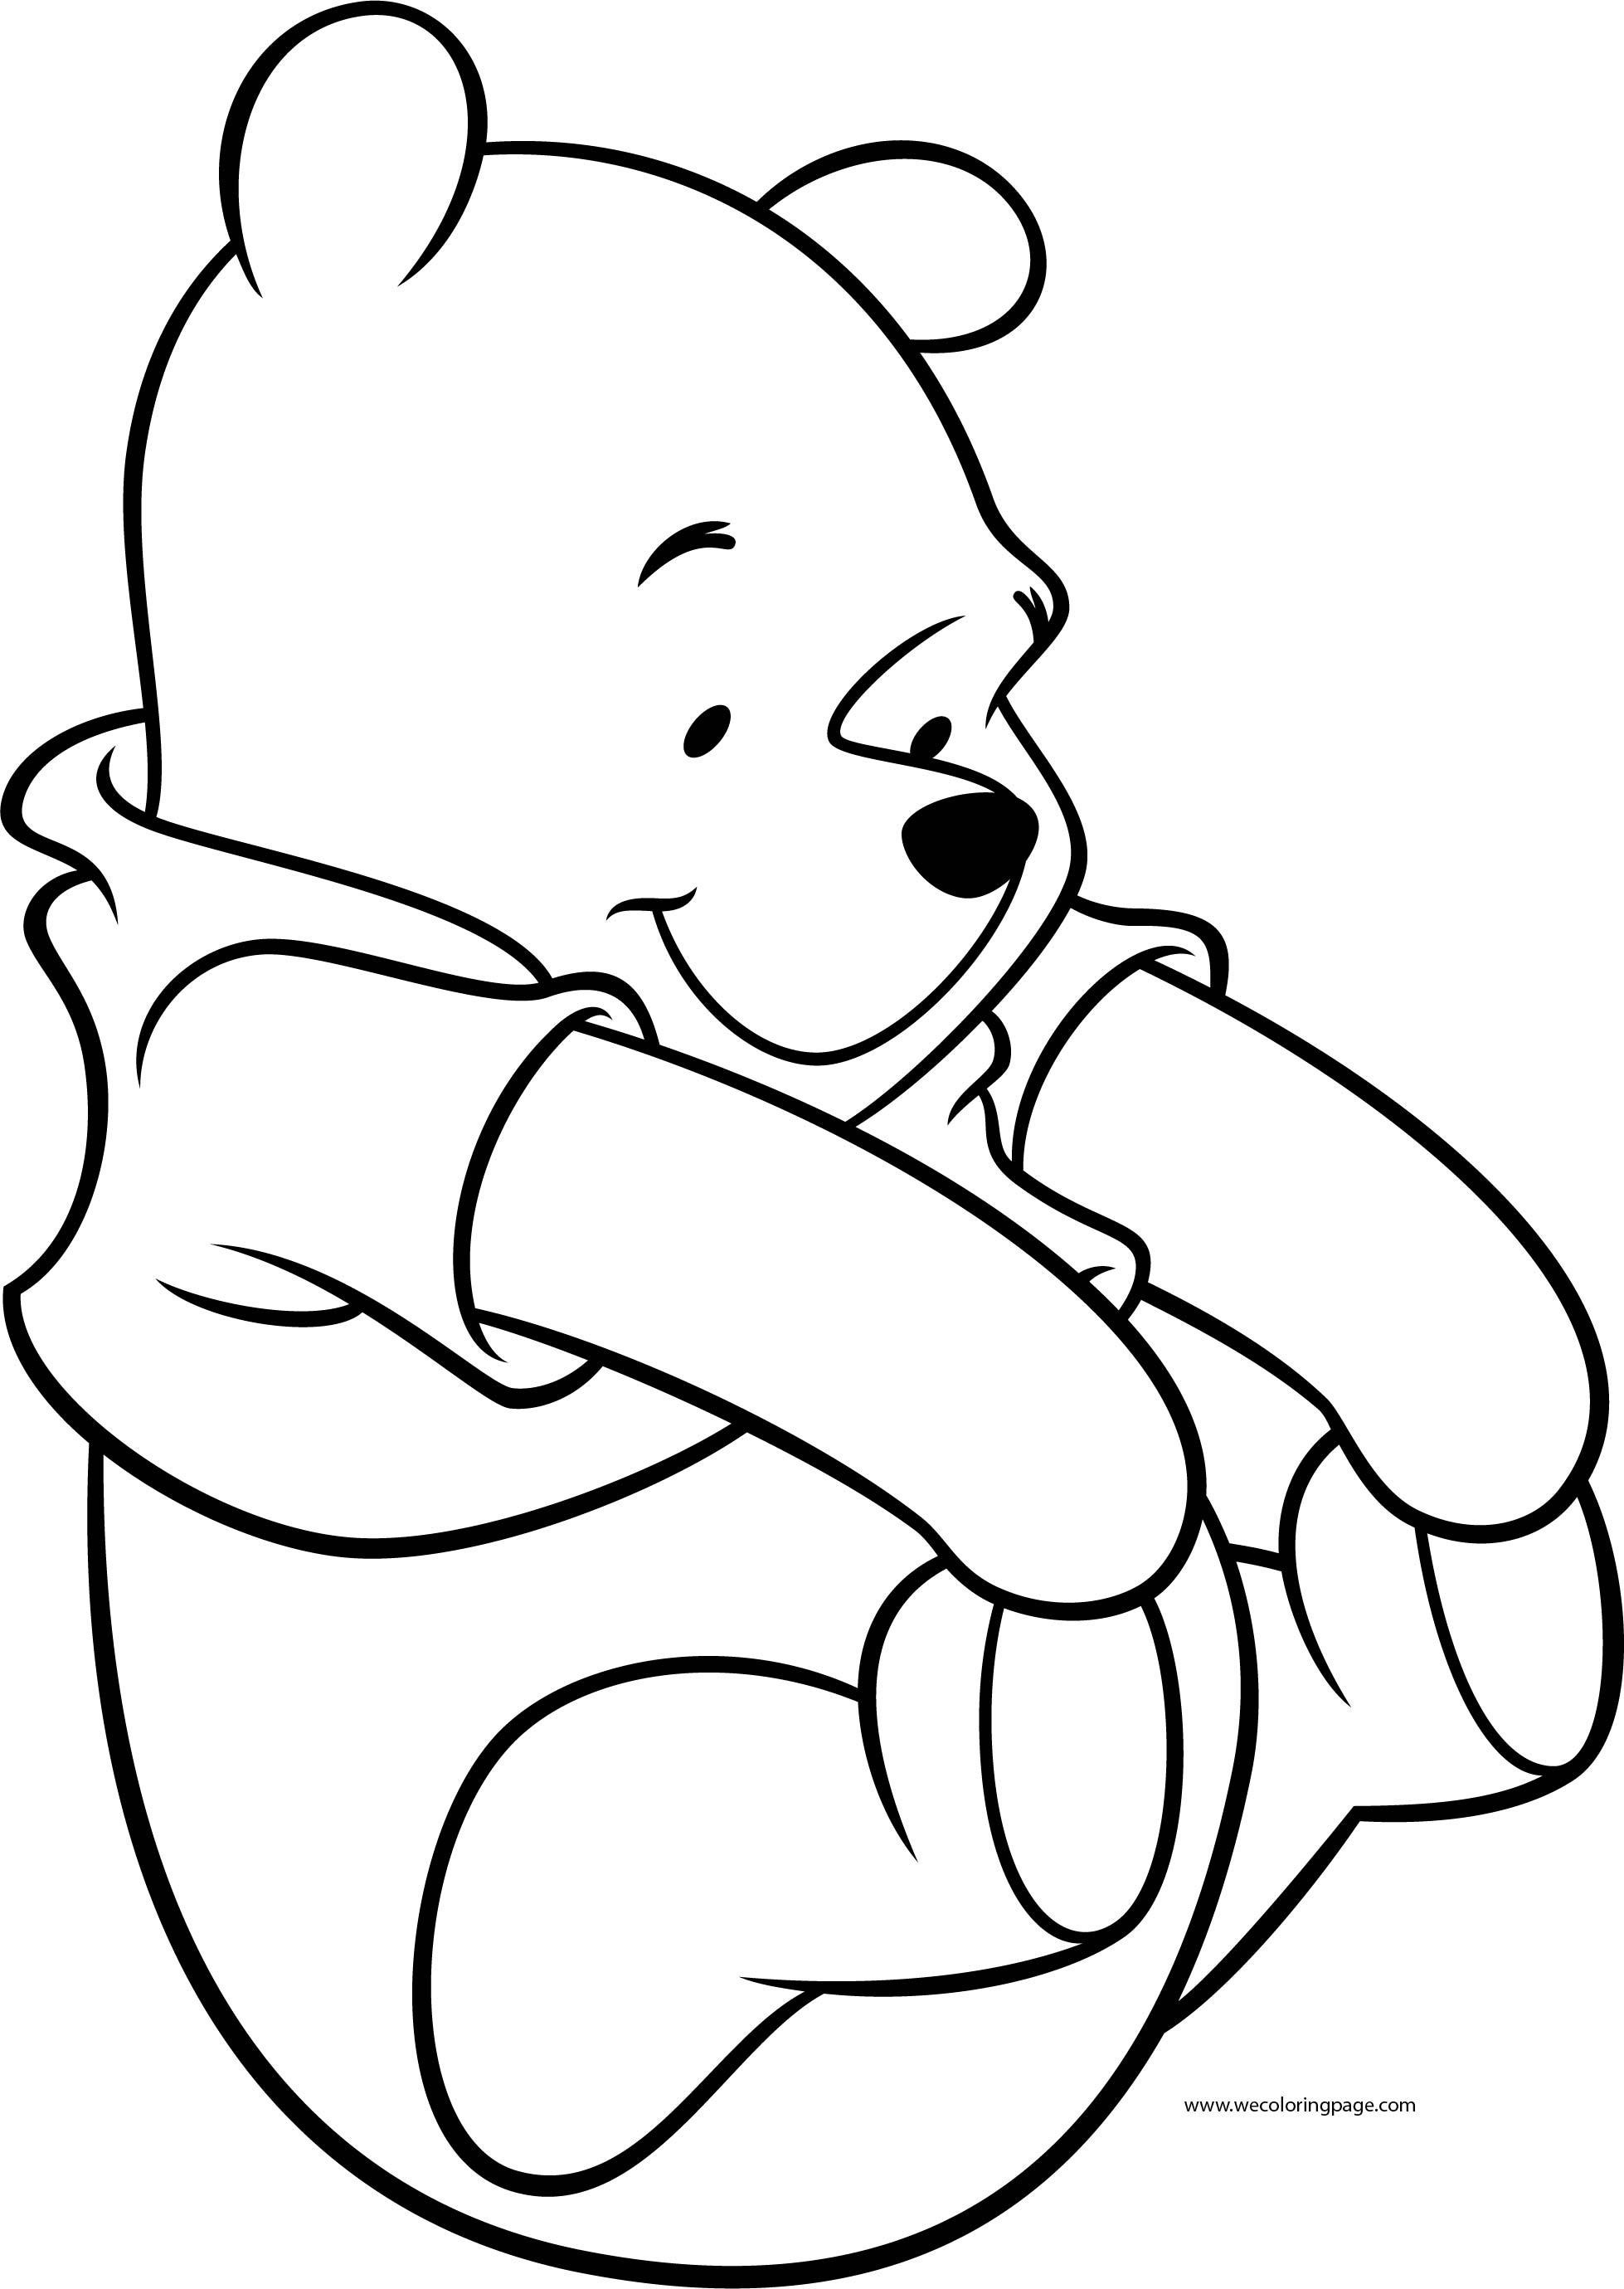 Winnie The Pooh Catch My Foot Coloring Page